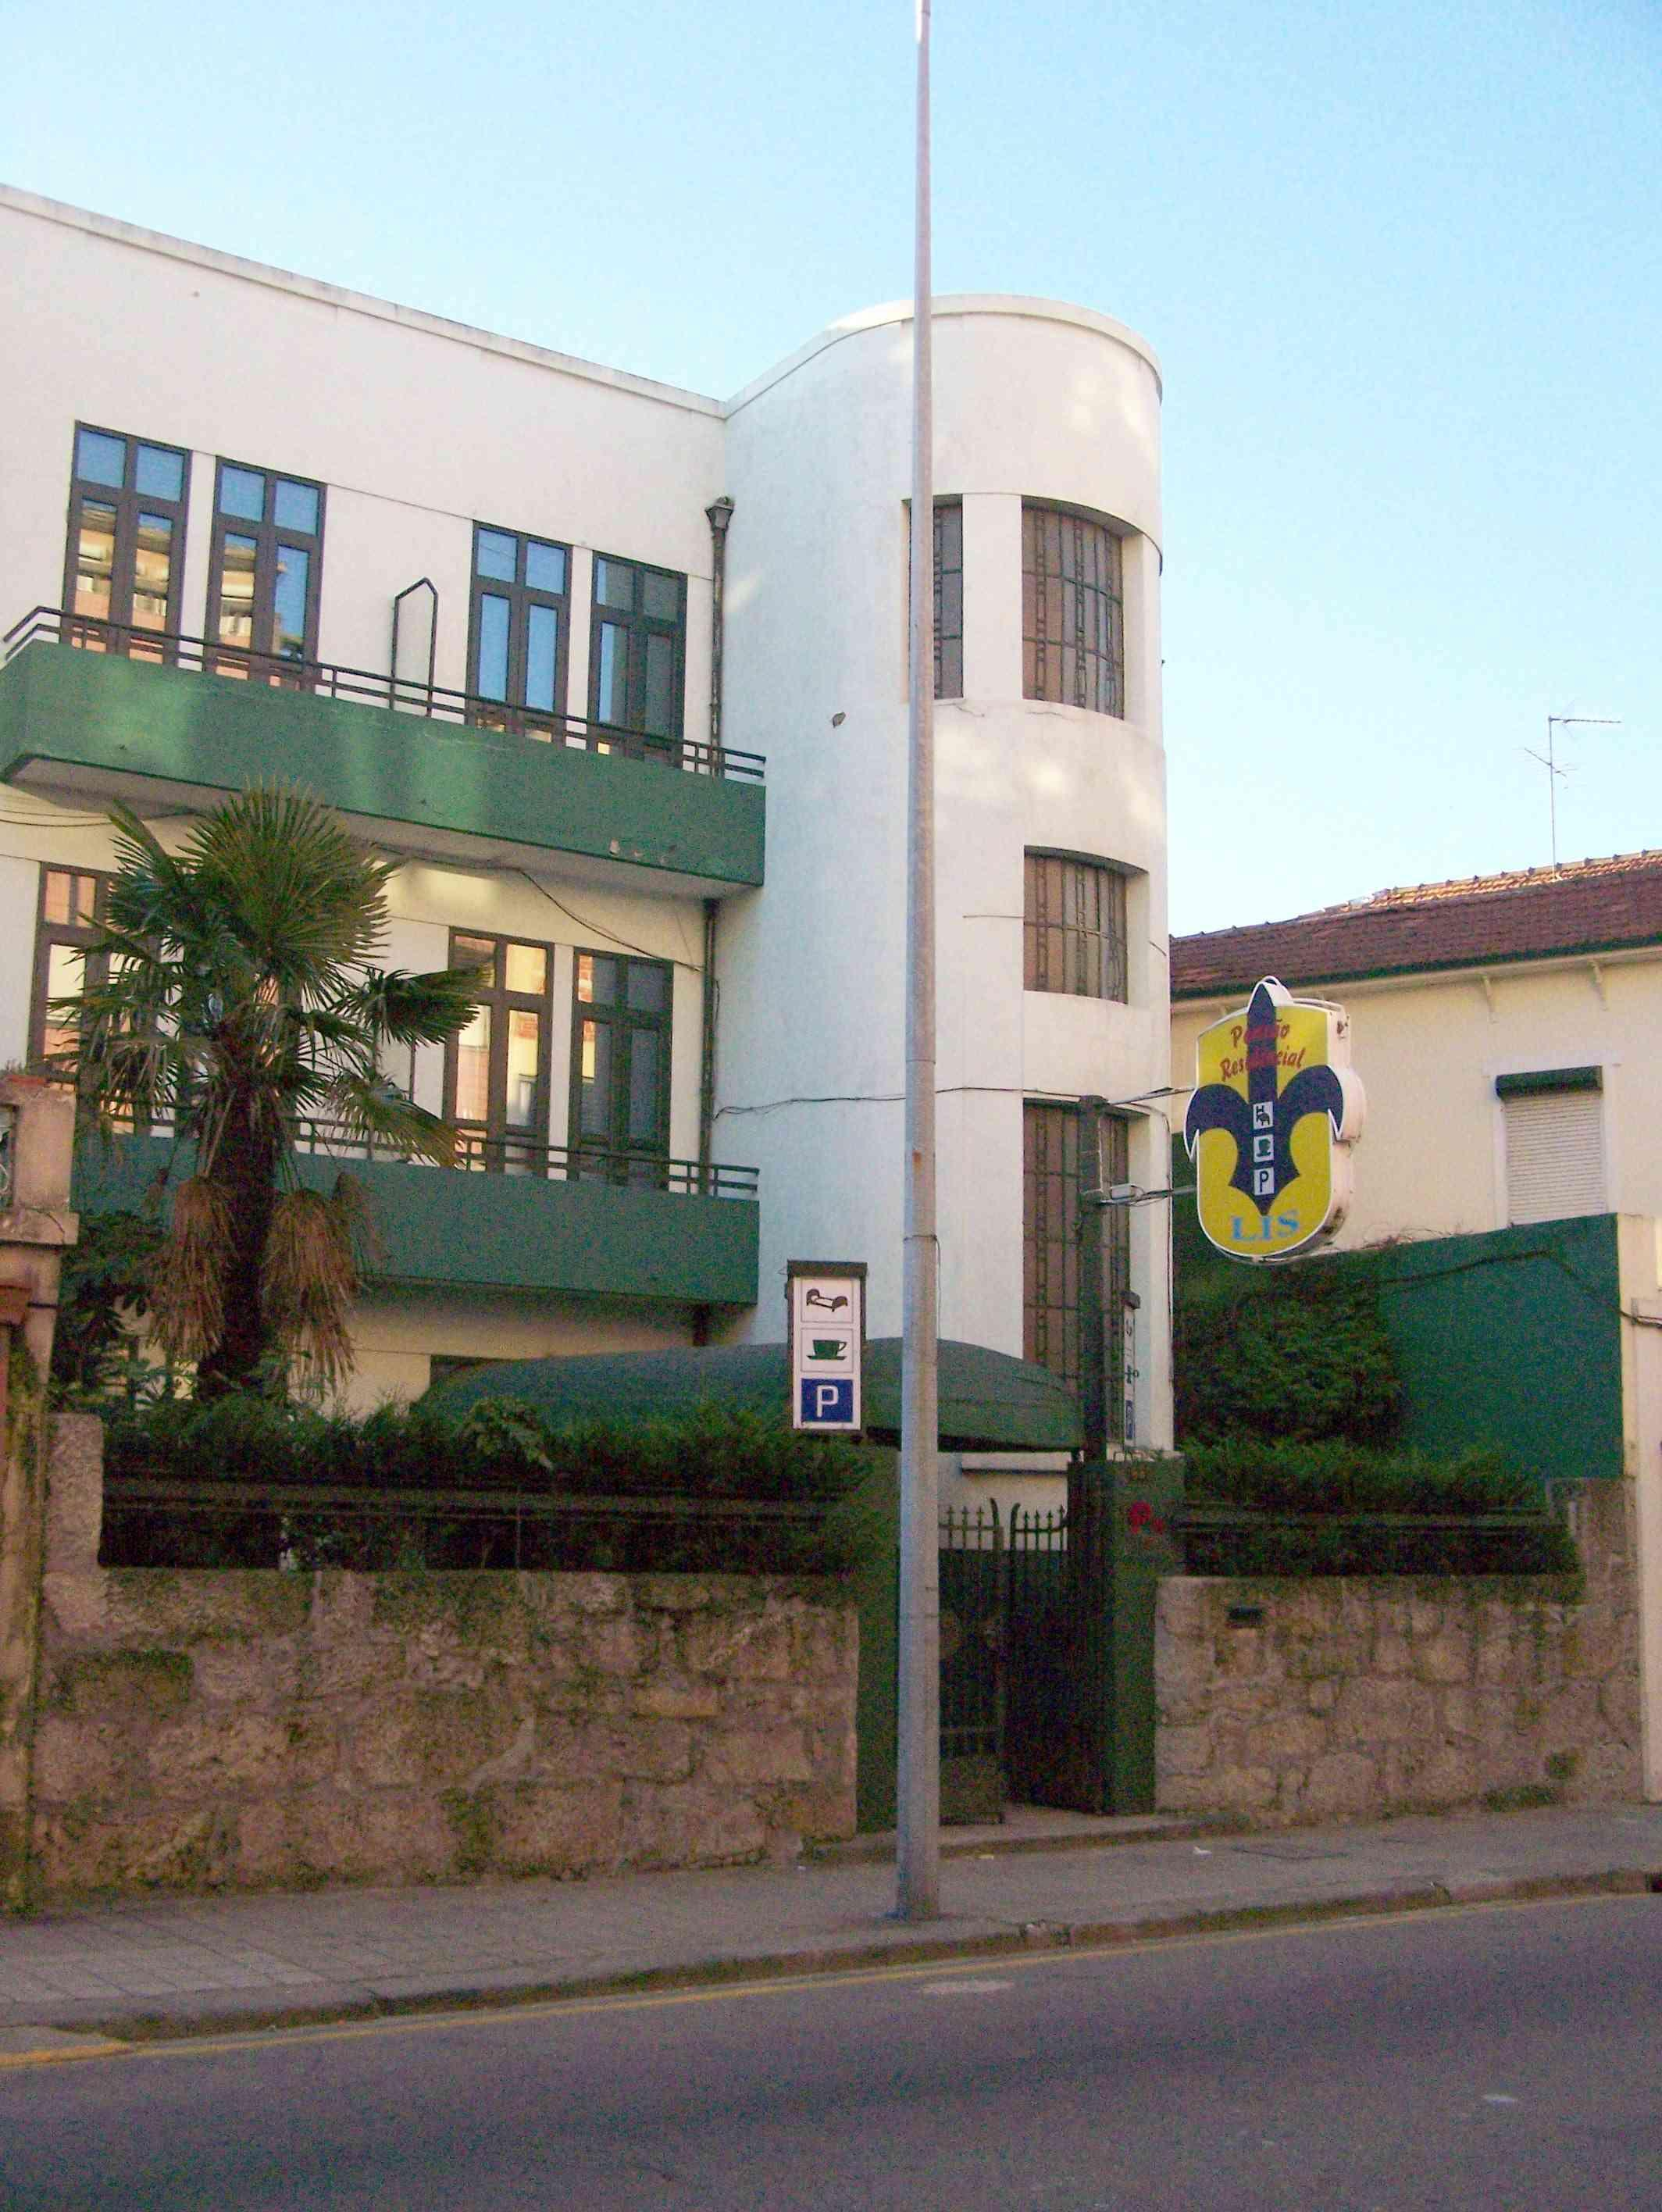 Residencia LIS B&B and Parking